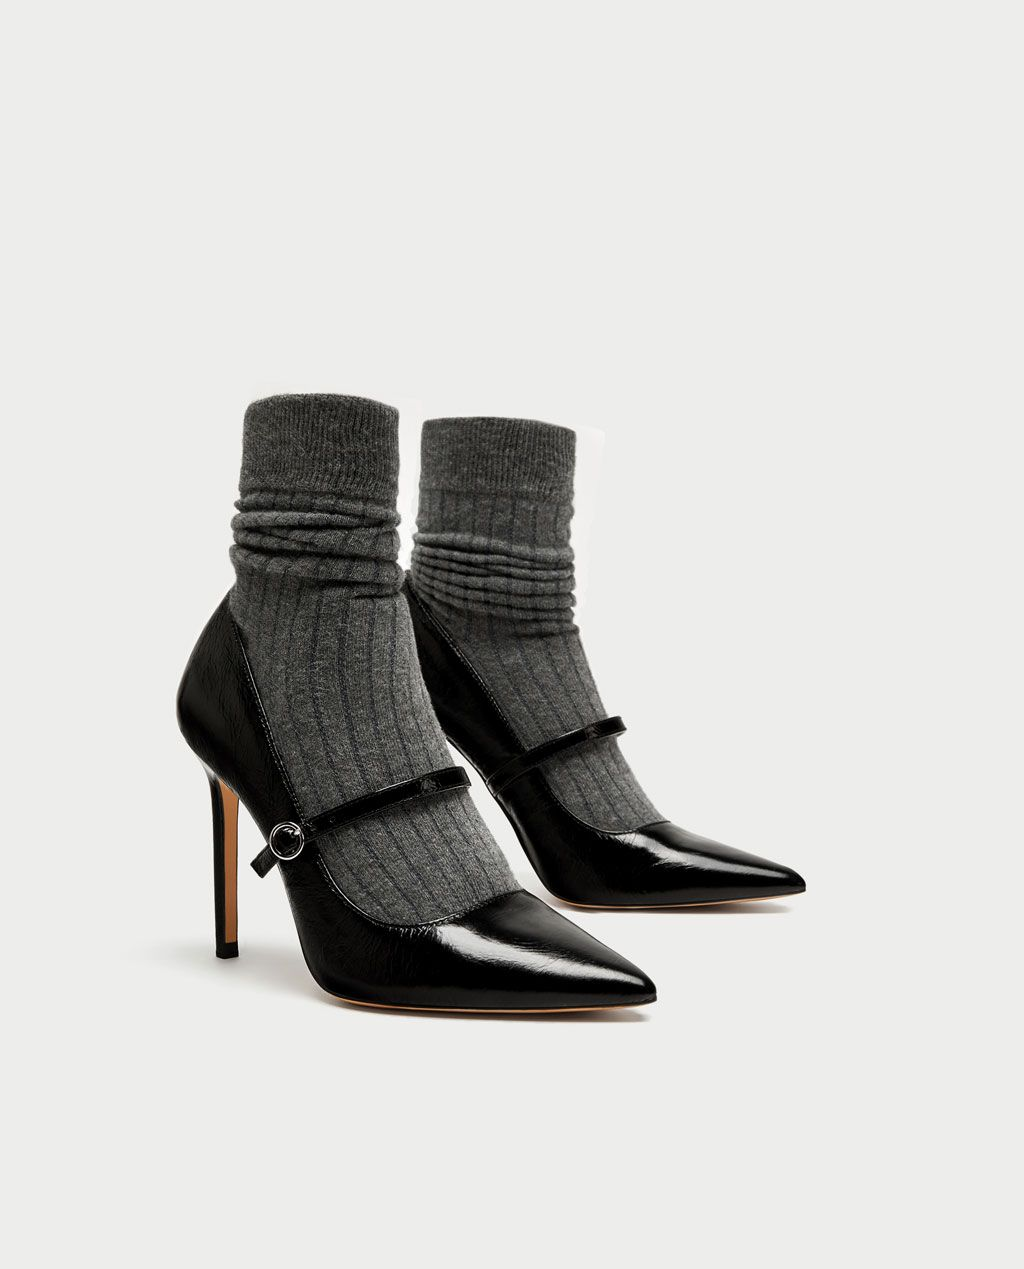 3f112b0f7ce SOCK-STYLE HIGH HEEL COURT SHOES-View all-SHOES-WOMAN